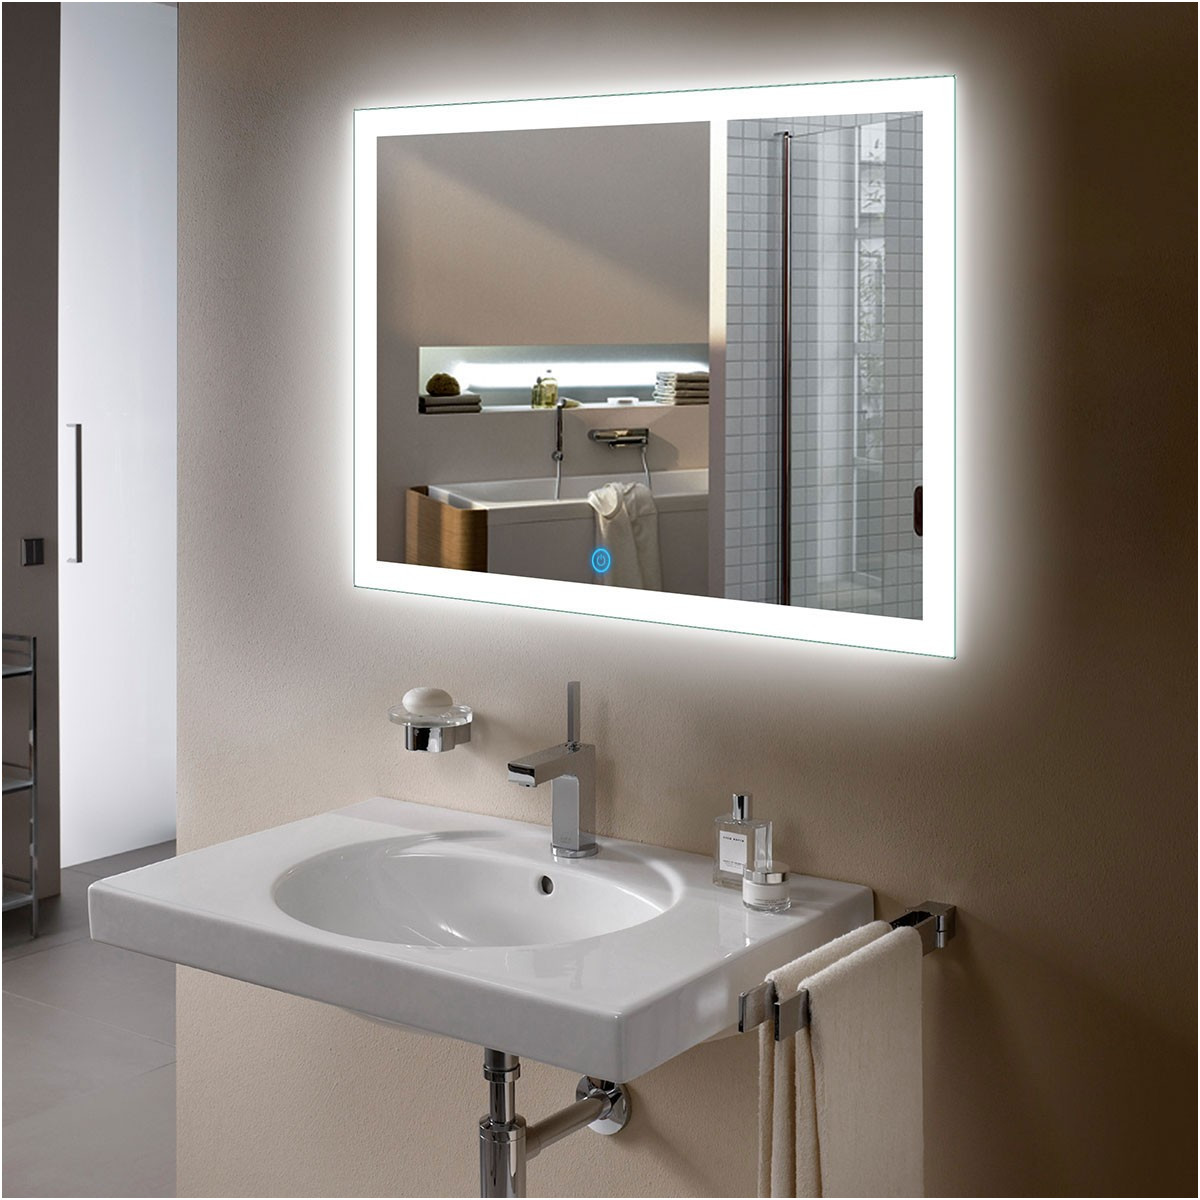 Awesome Bathroom Mirrors with Lights and Shelf